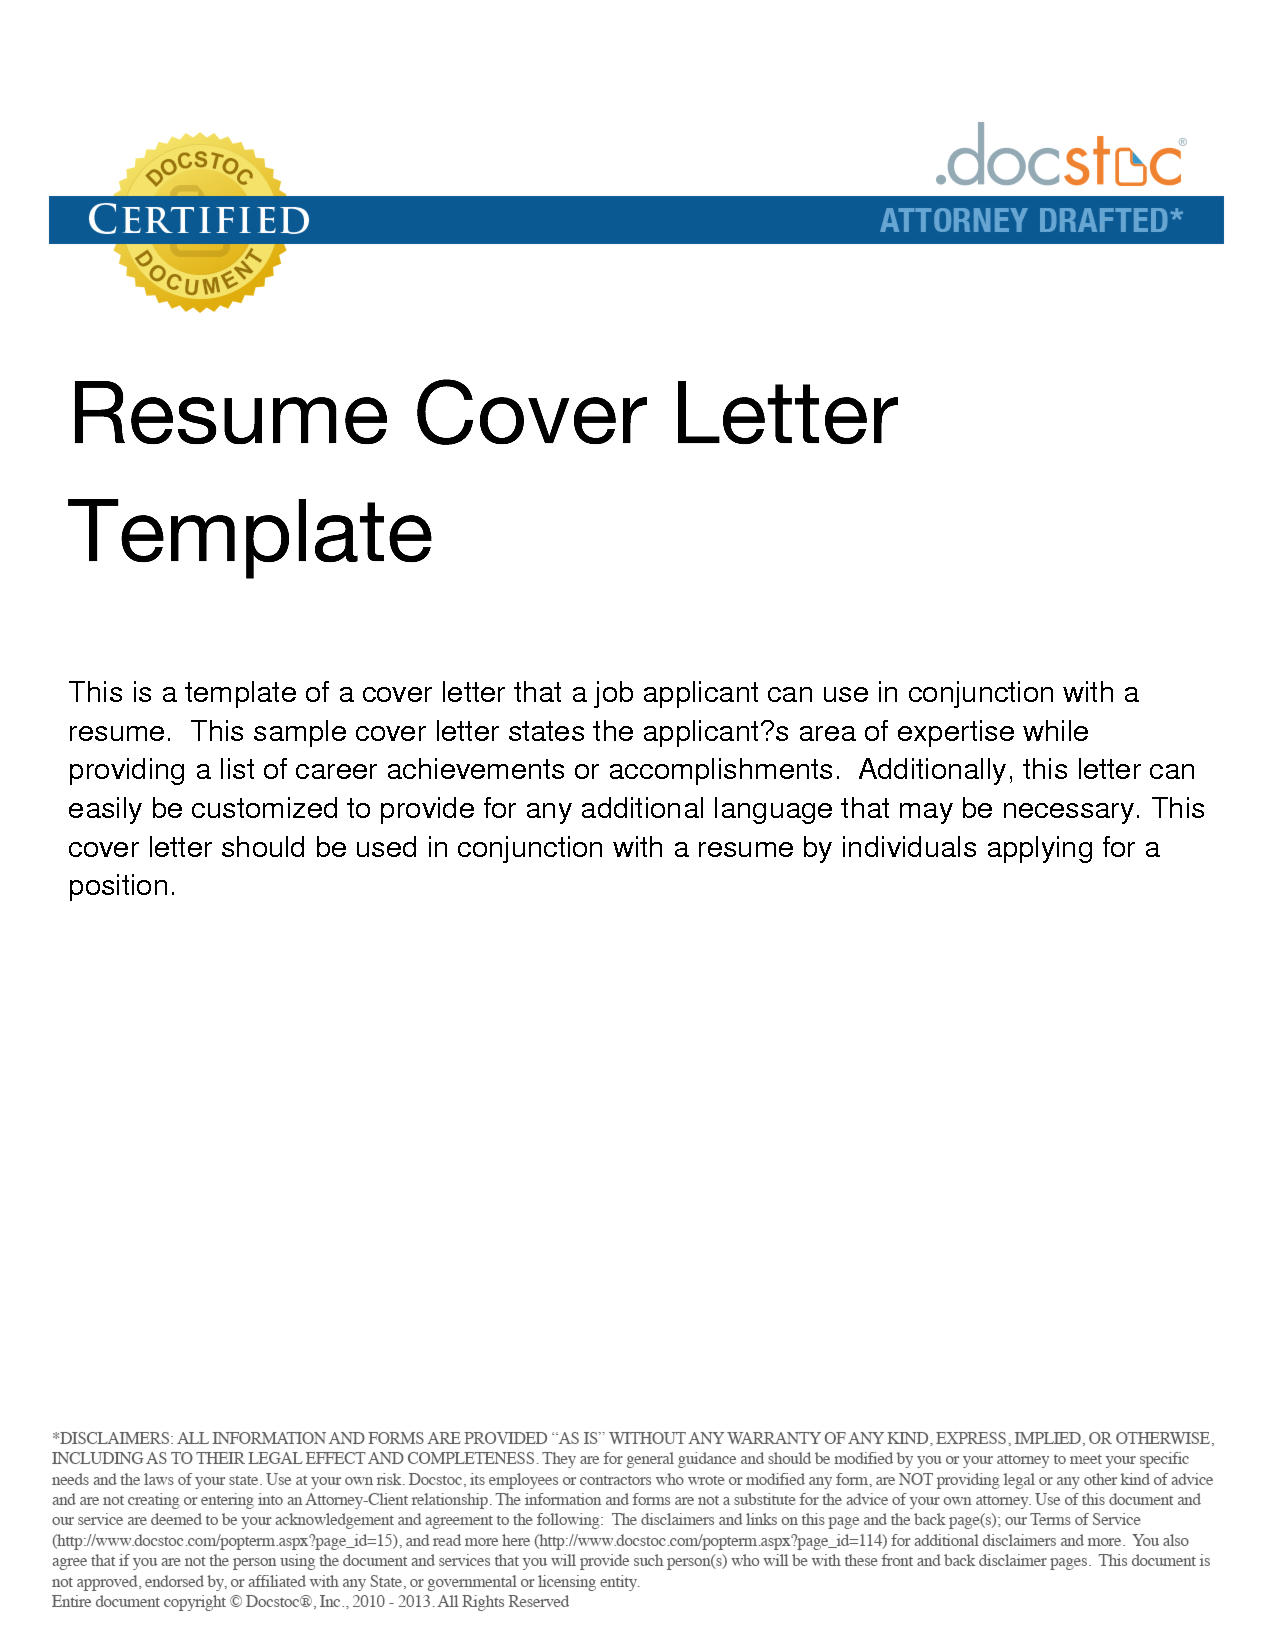 Rent Reduction Letter Template - Free Cover Letter Examples for Resume Cover Letter for Resume